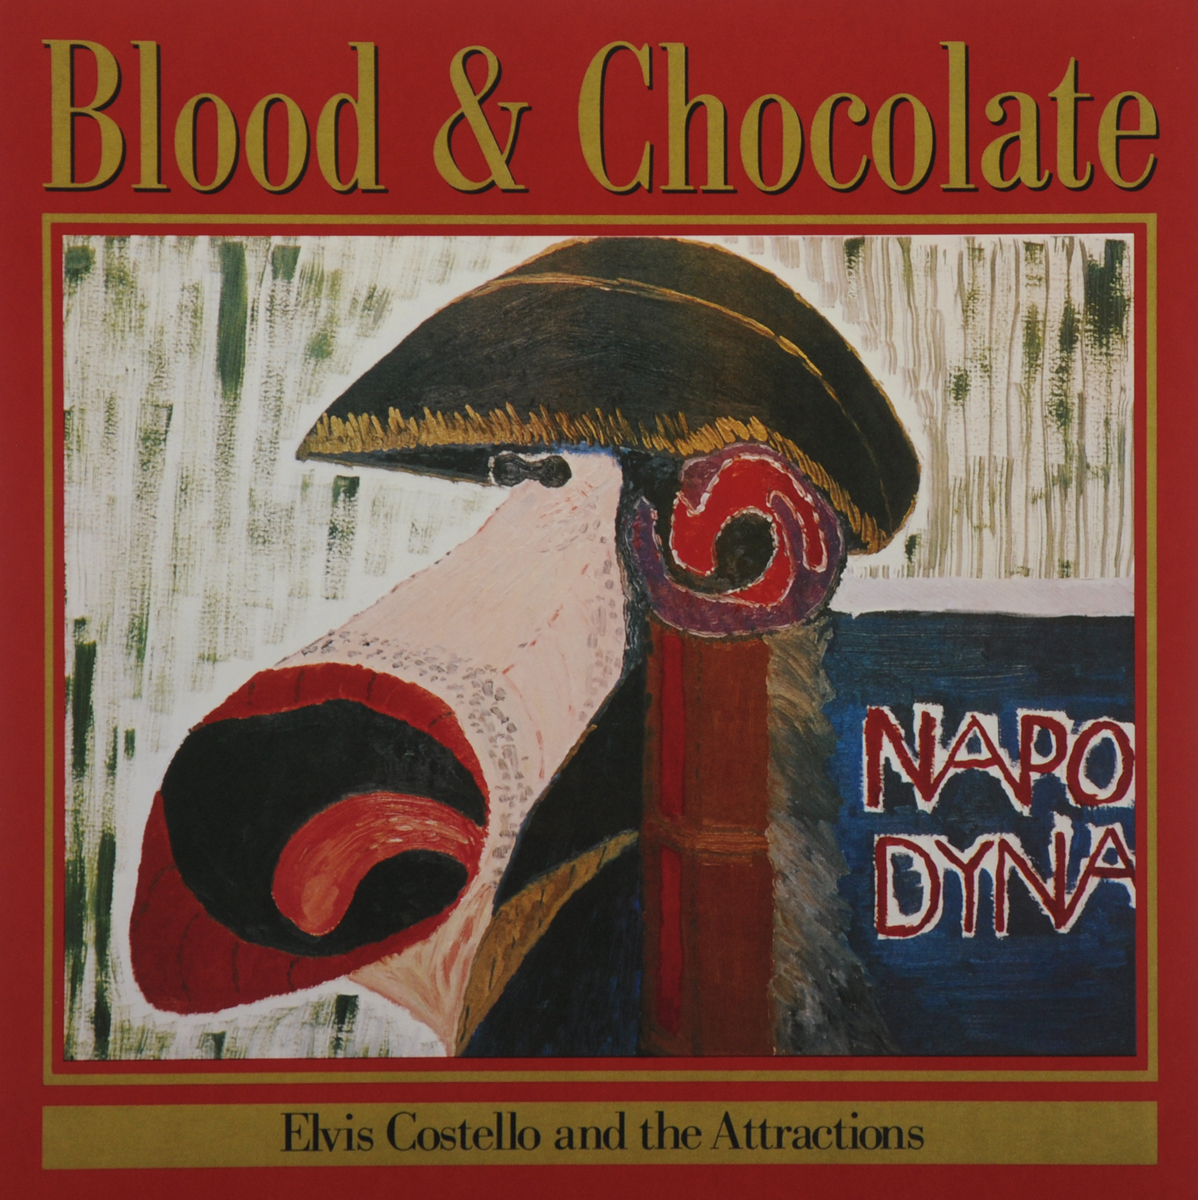 Элвис Костелло,The Attractions Elvis Costello And The Attractions. Blood & Chocolate (LP) элвис костелло the attractions elvis costello and the attractions ibmepderoloaml lp